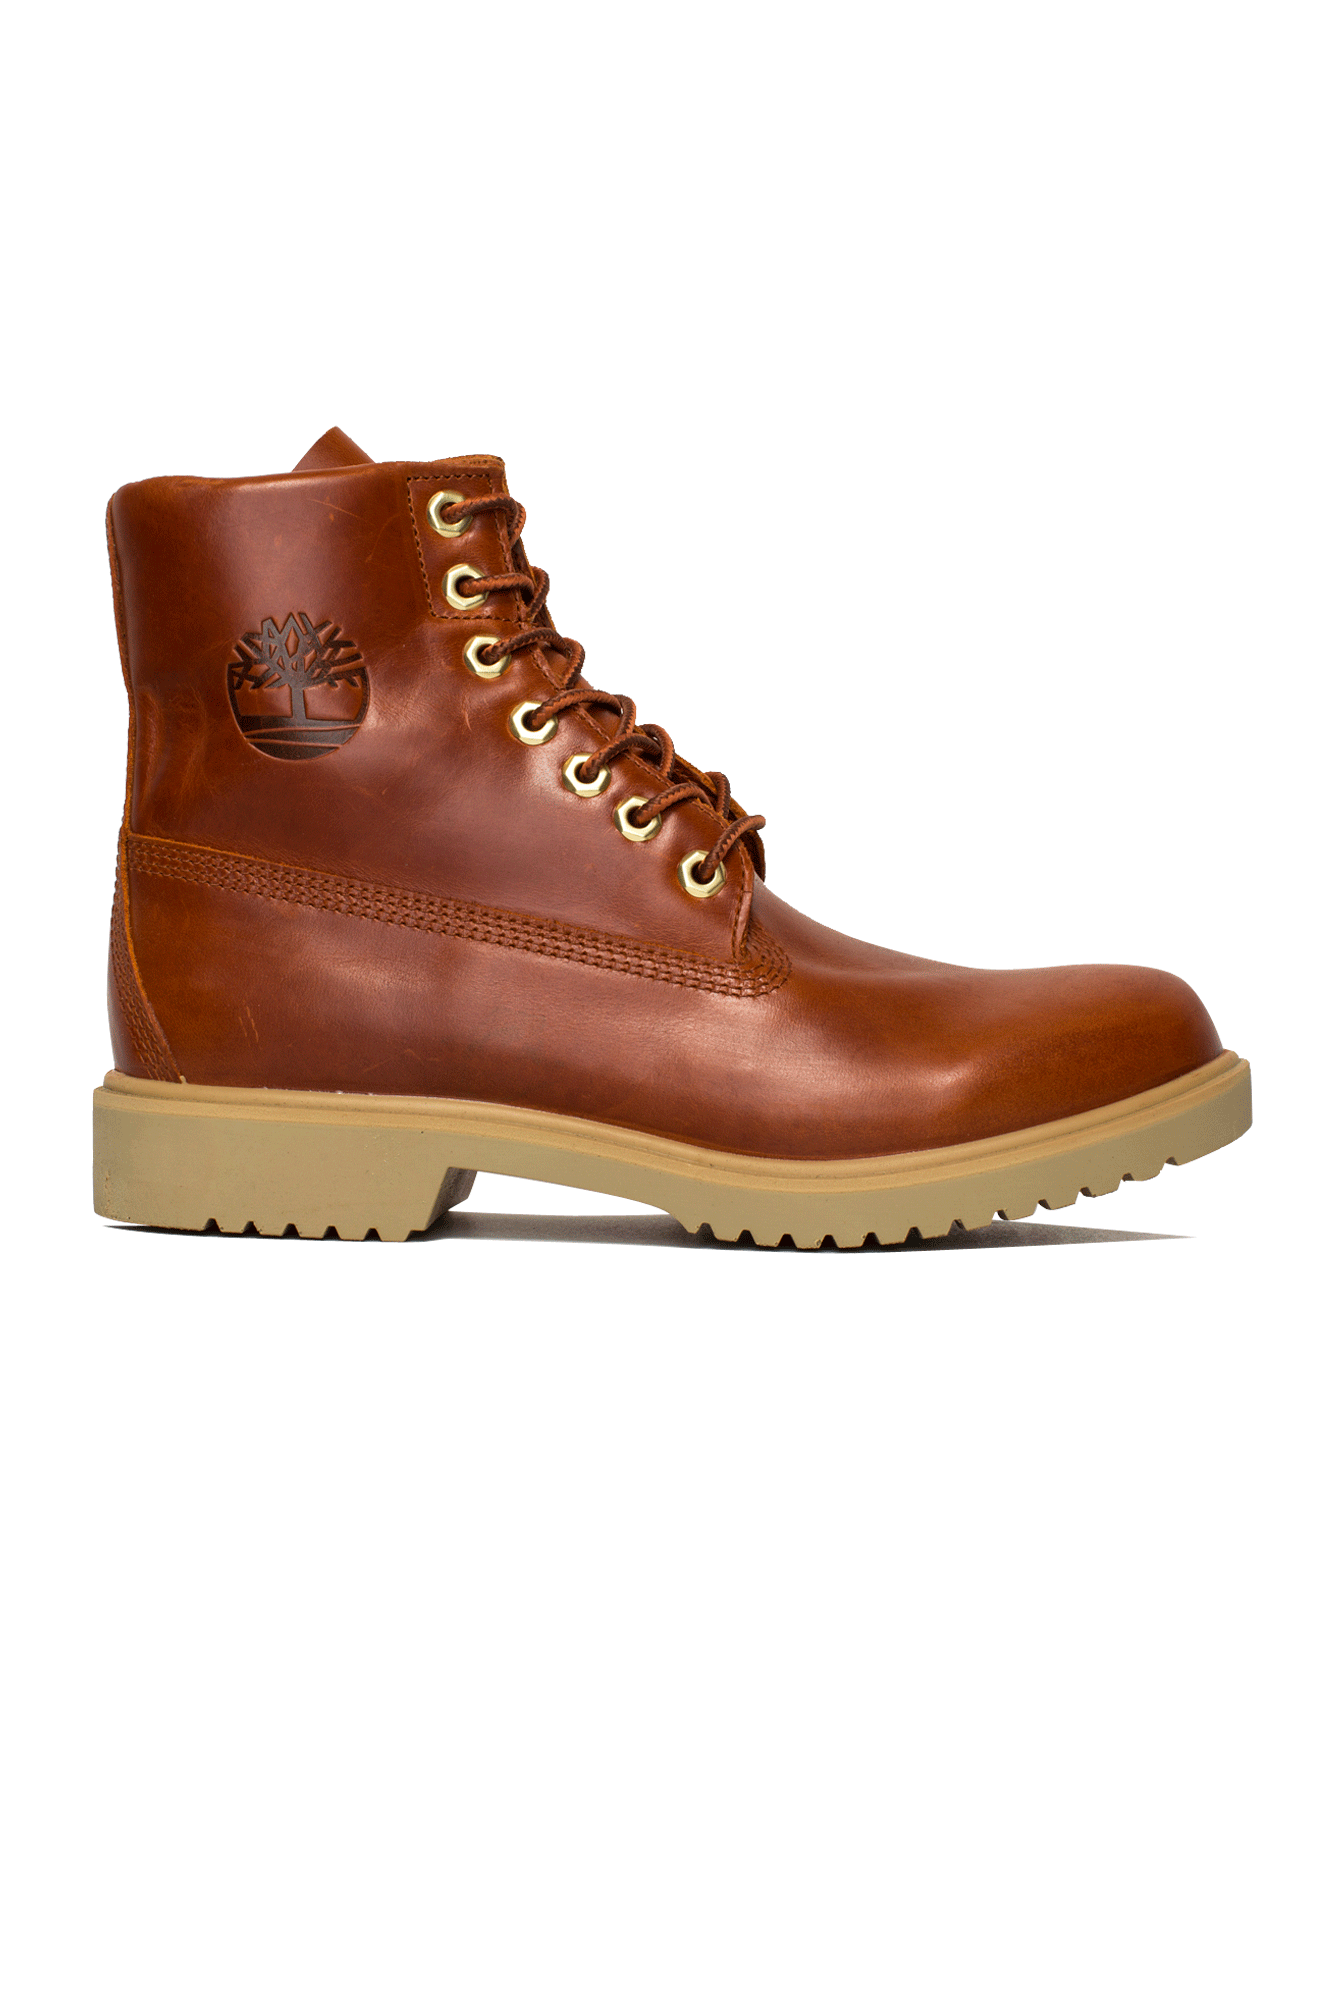 Timberland Boots 1973 Newman Boot Brown A26WG8141#000#8141#7 - One Block Down